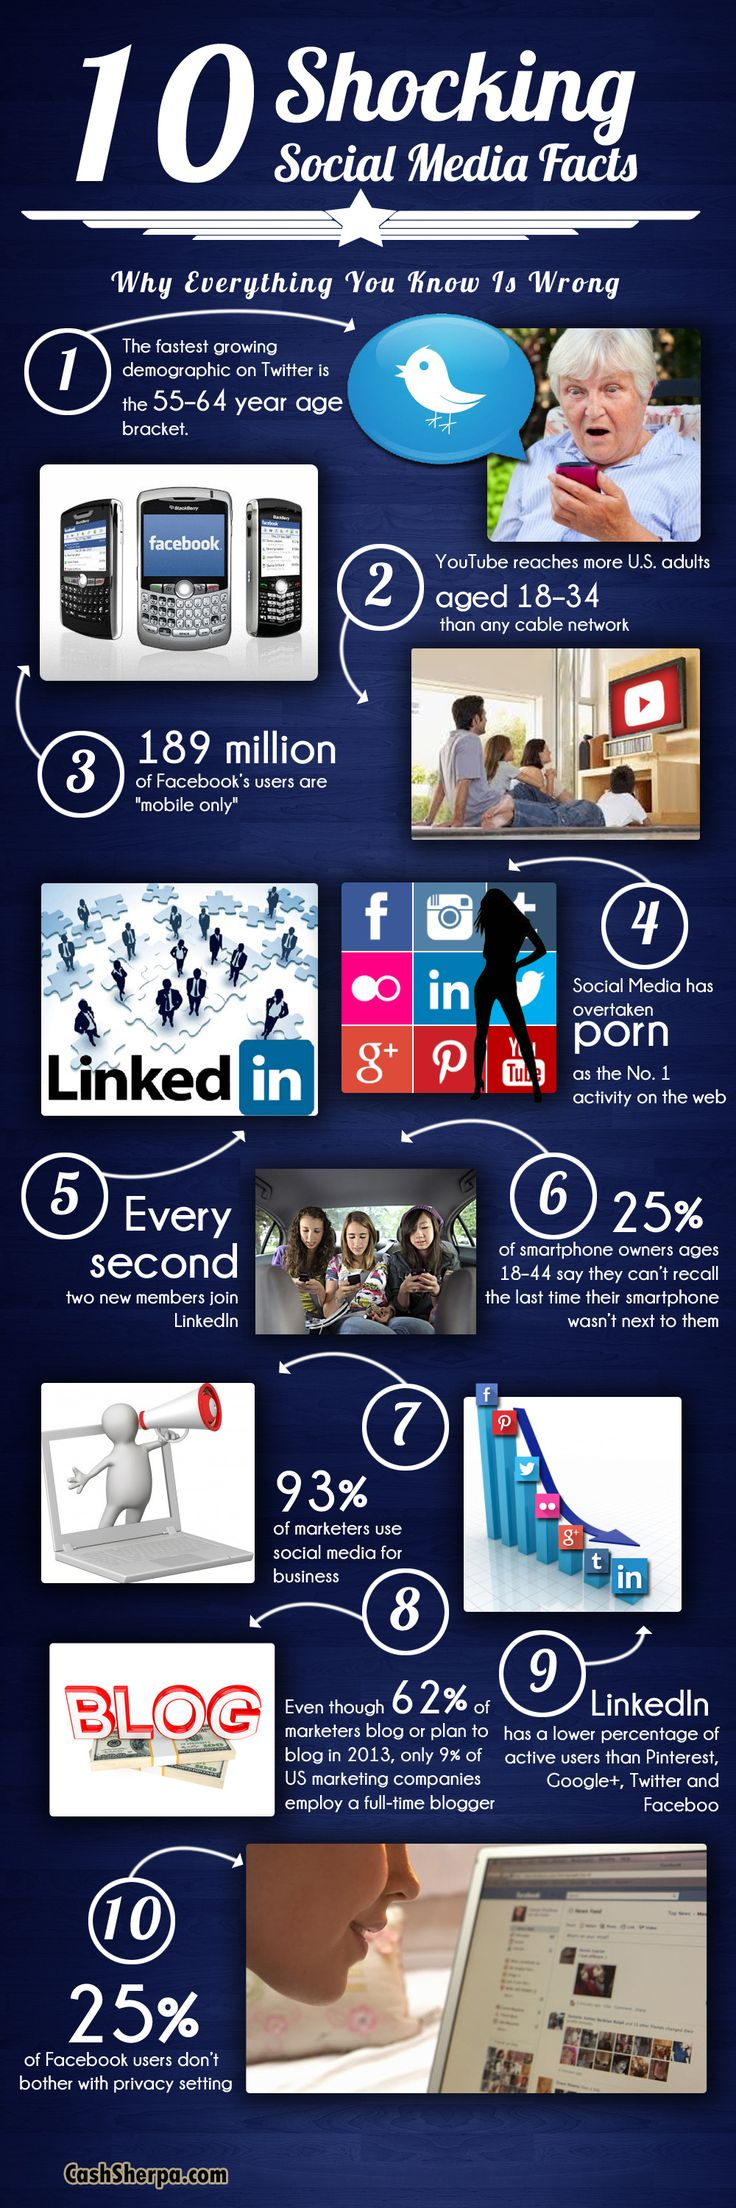 Social media has overtaken porn as the no. 1 activitye on the web!!! 10 Shocking Social Media Facts [INFOGRAPHIC]